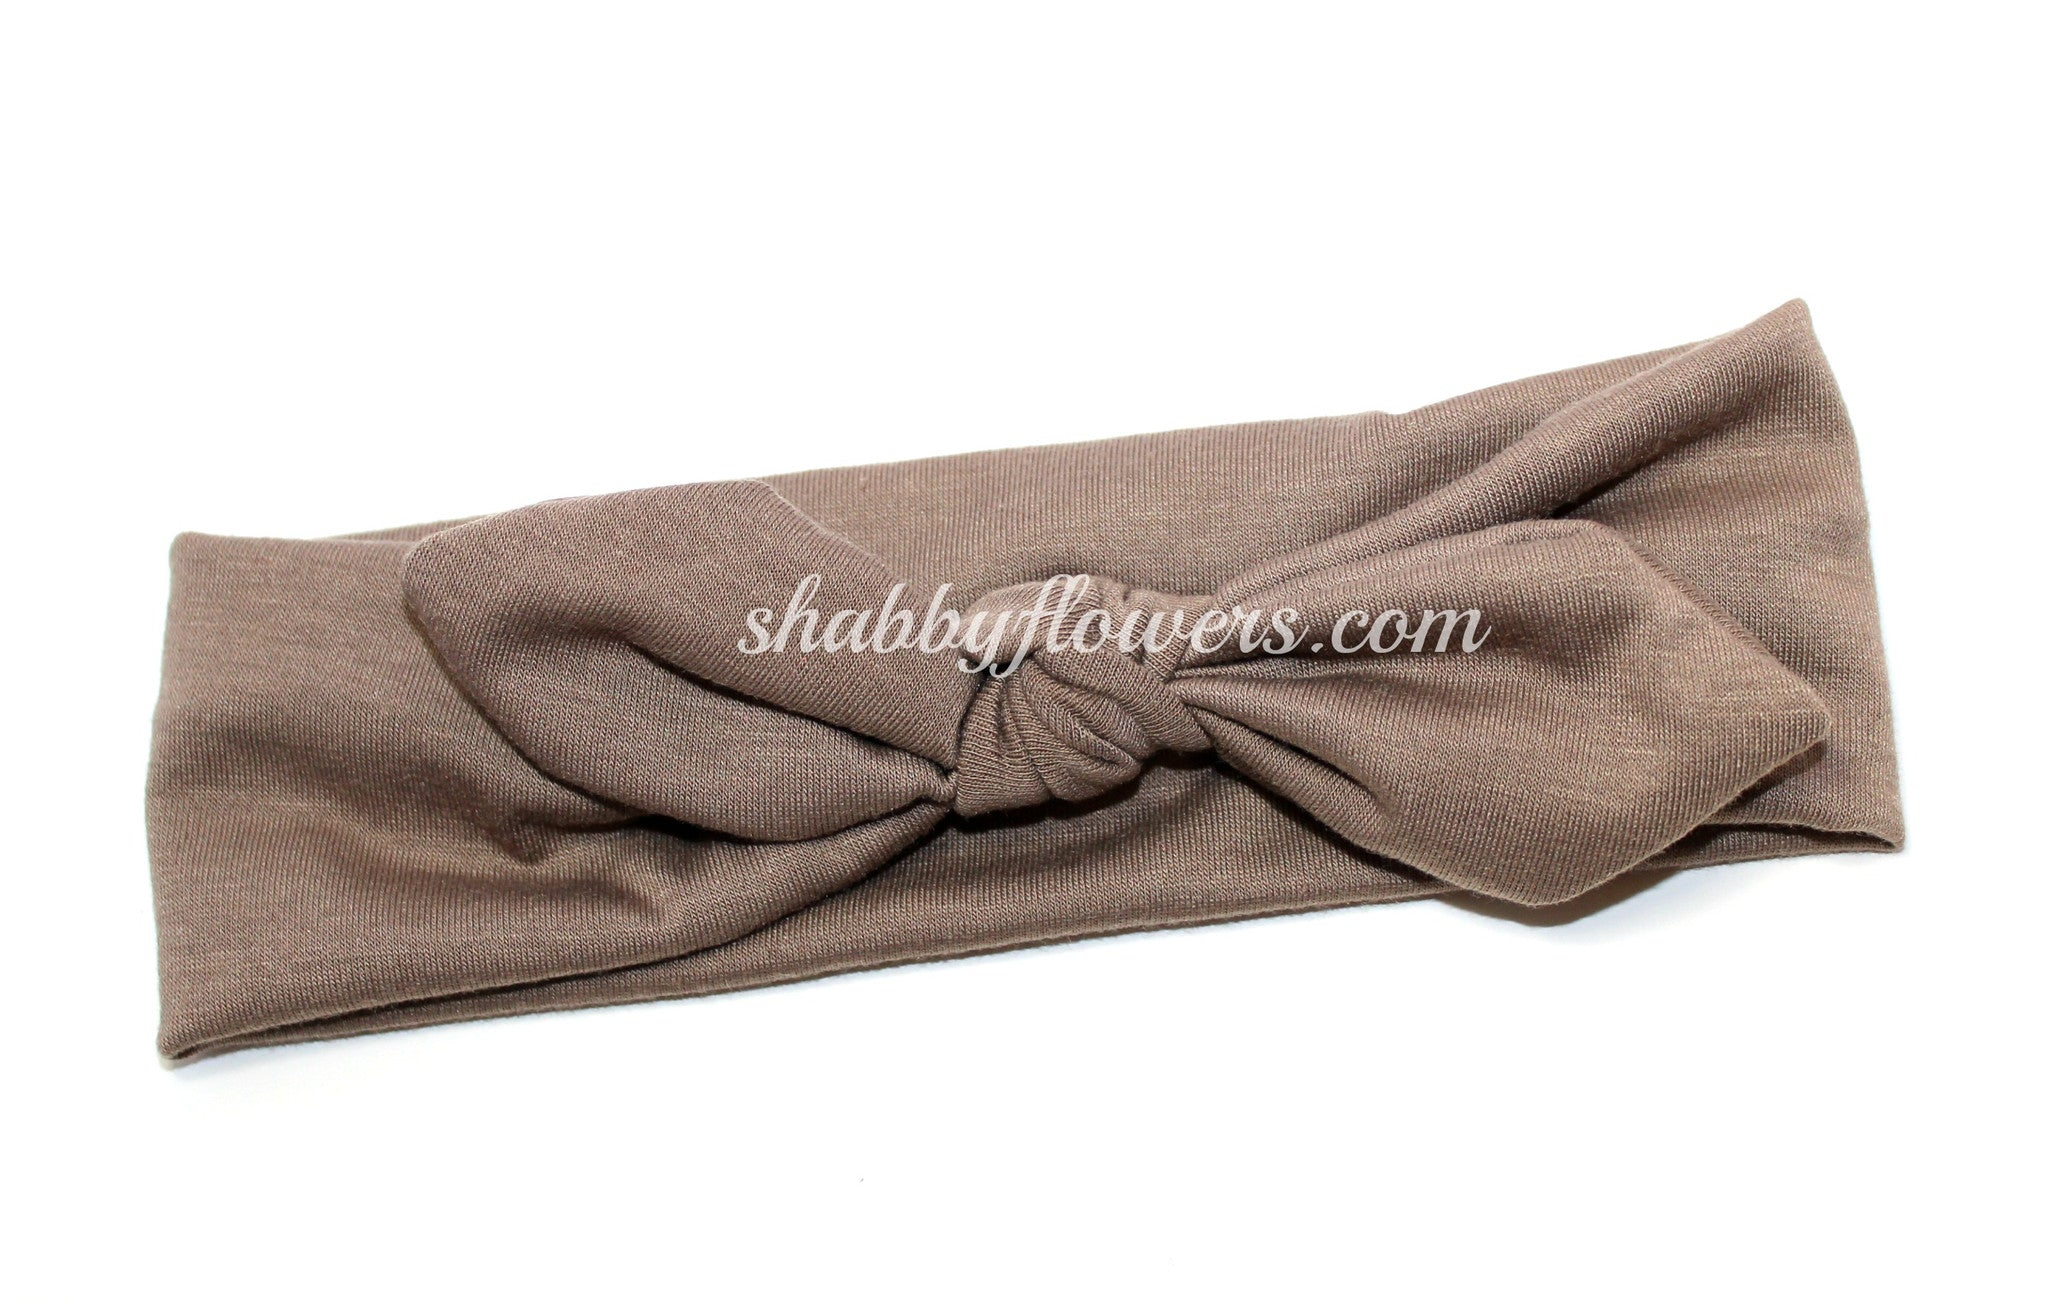 Knot Headband in Taupe - shabbyflowers.com